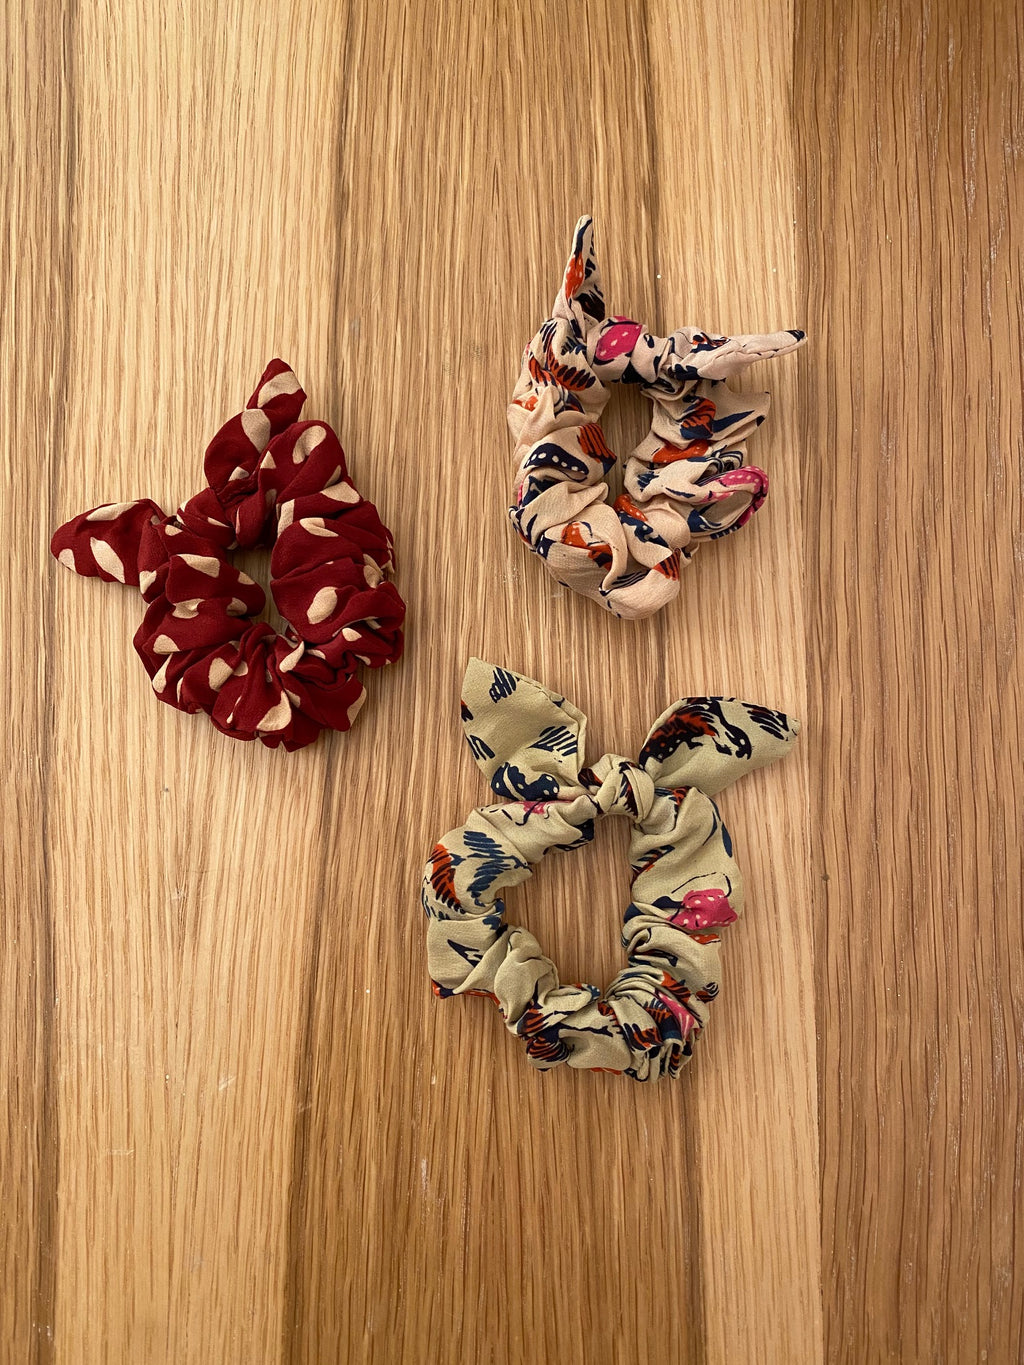 SILK SCRUNCHIE - WILDFLOWER / SAND DOLLAR PRINT - PACK OF 3